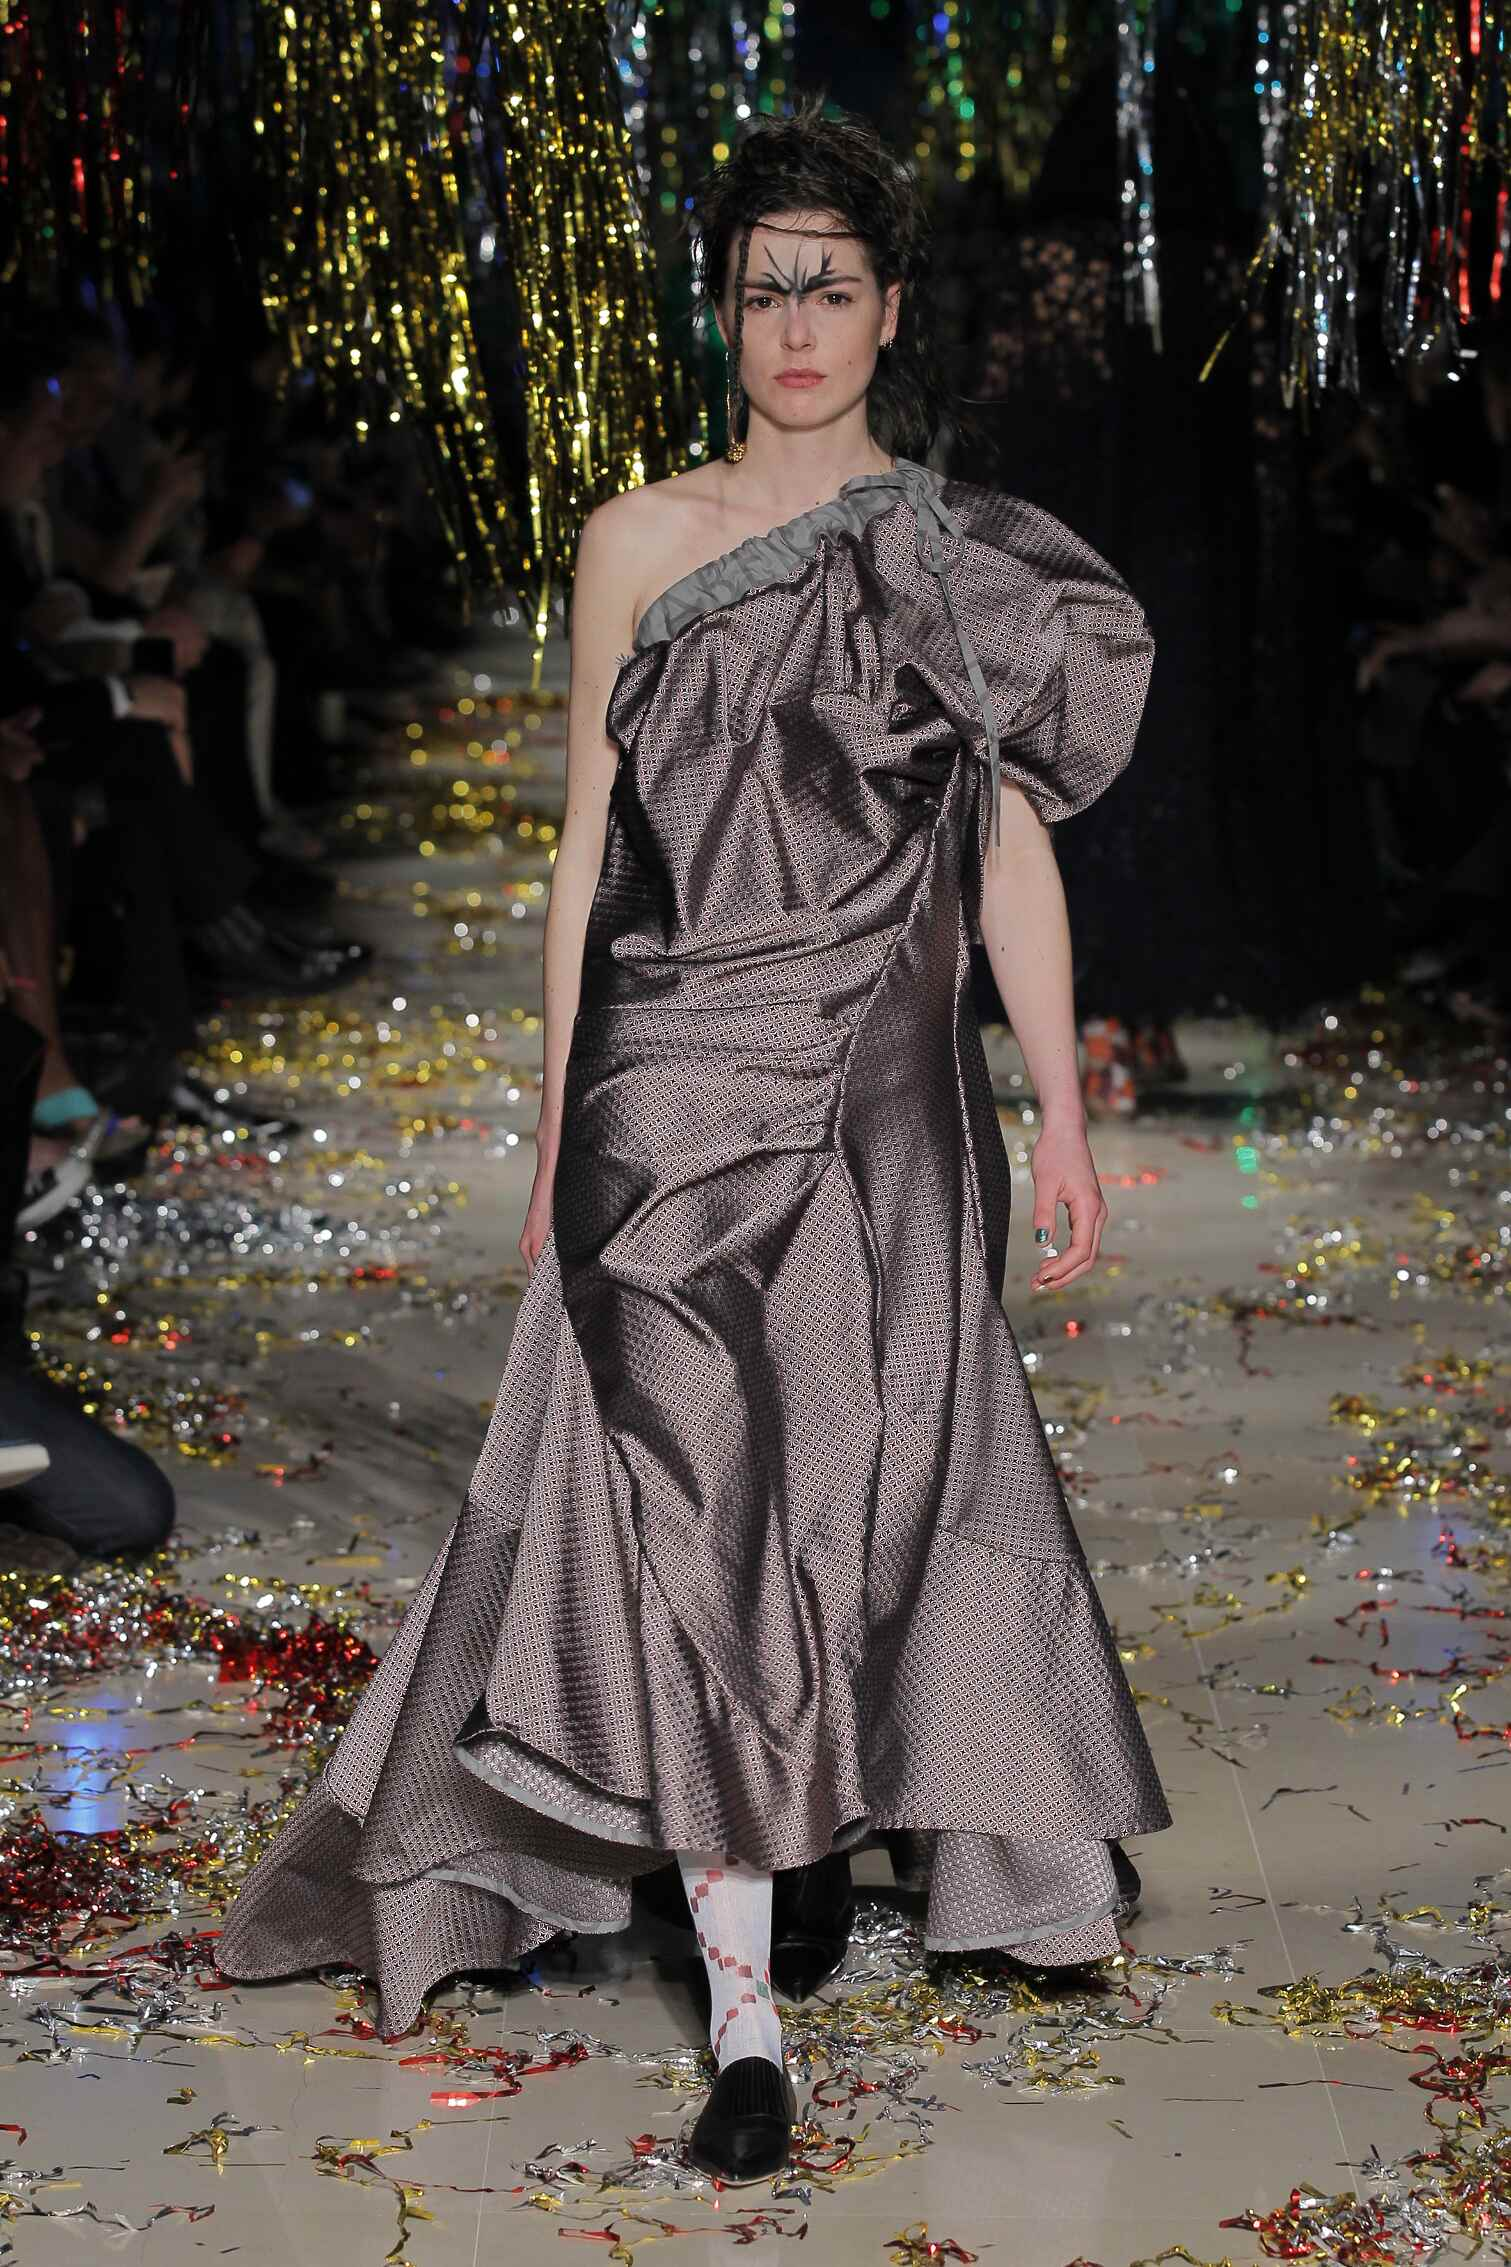 2015 Fall Fashion Woman Vivienne Westwood Gold Label Collection